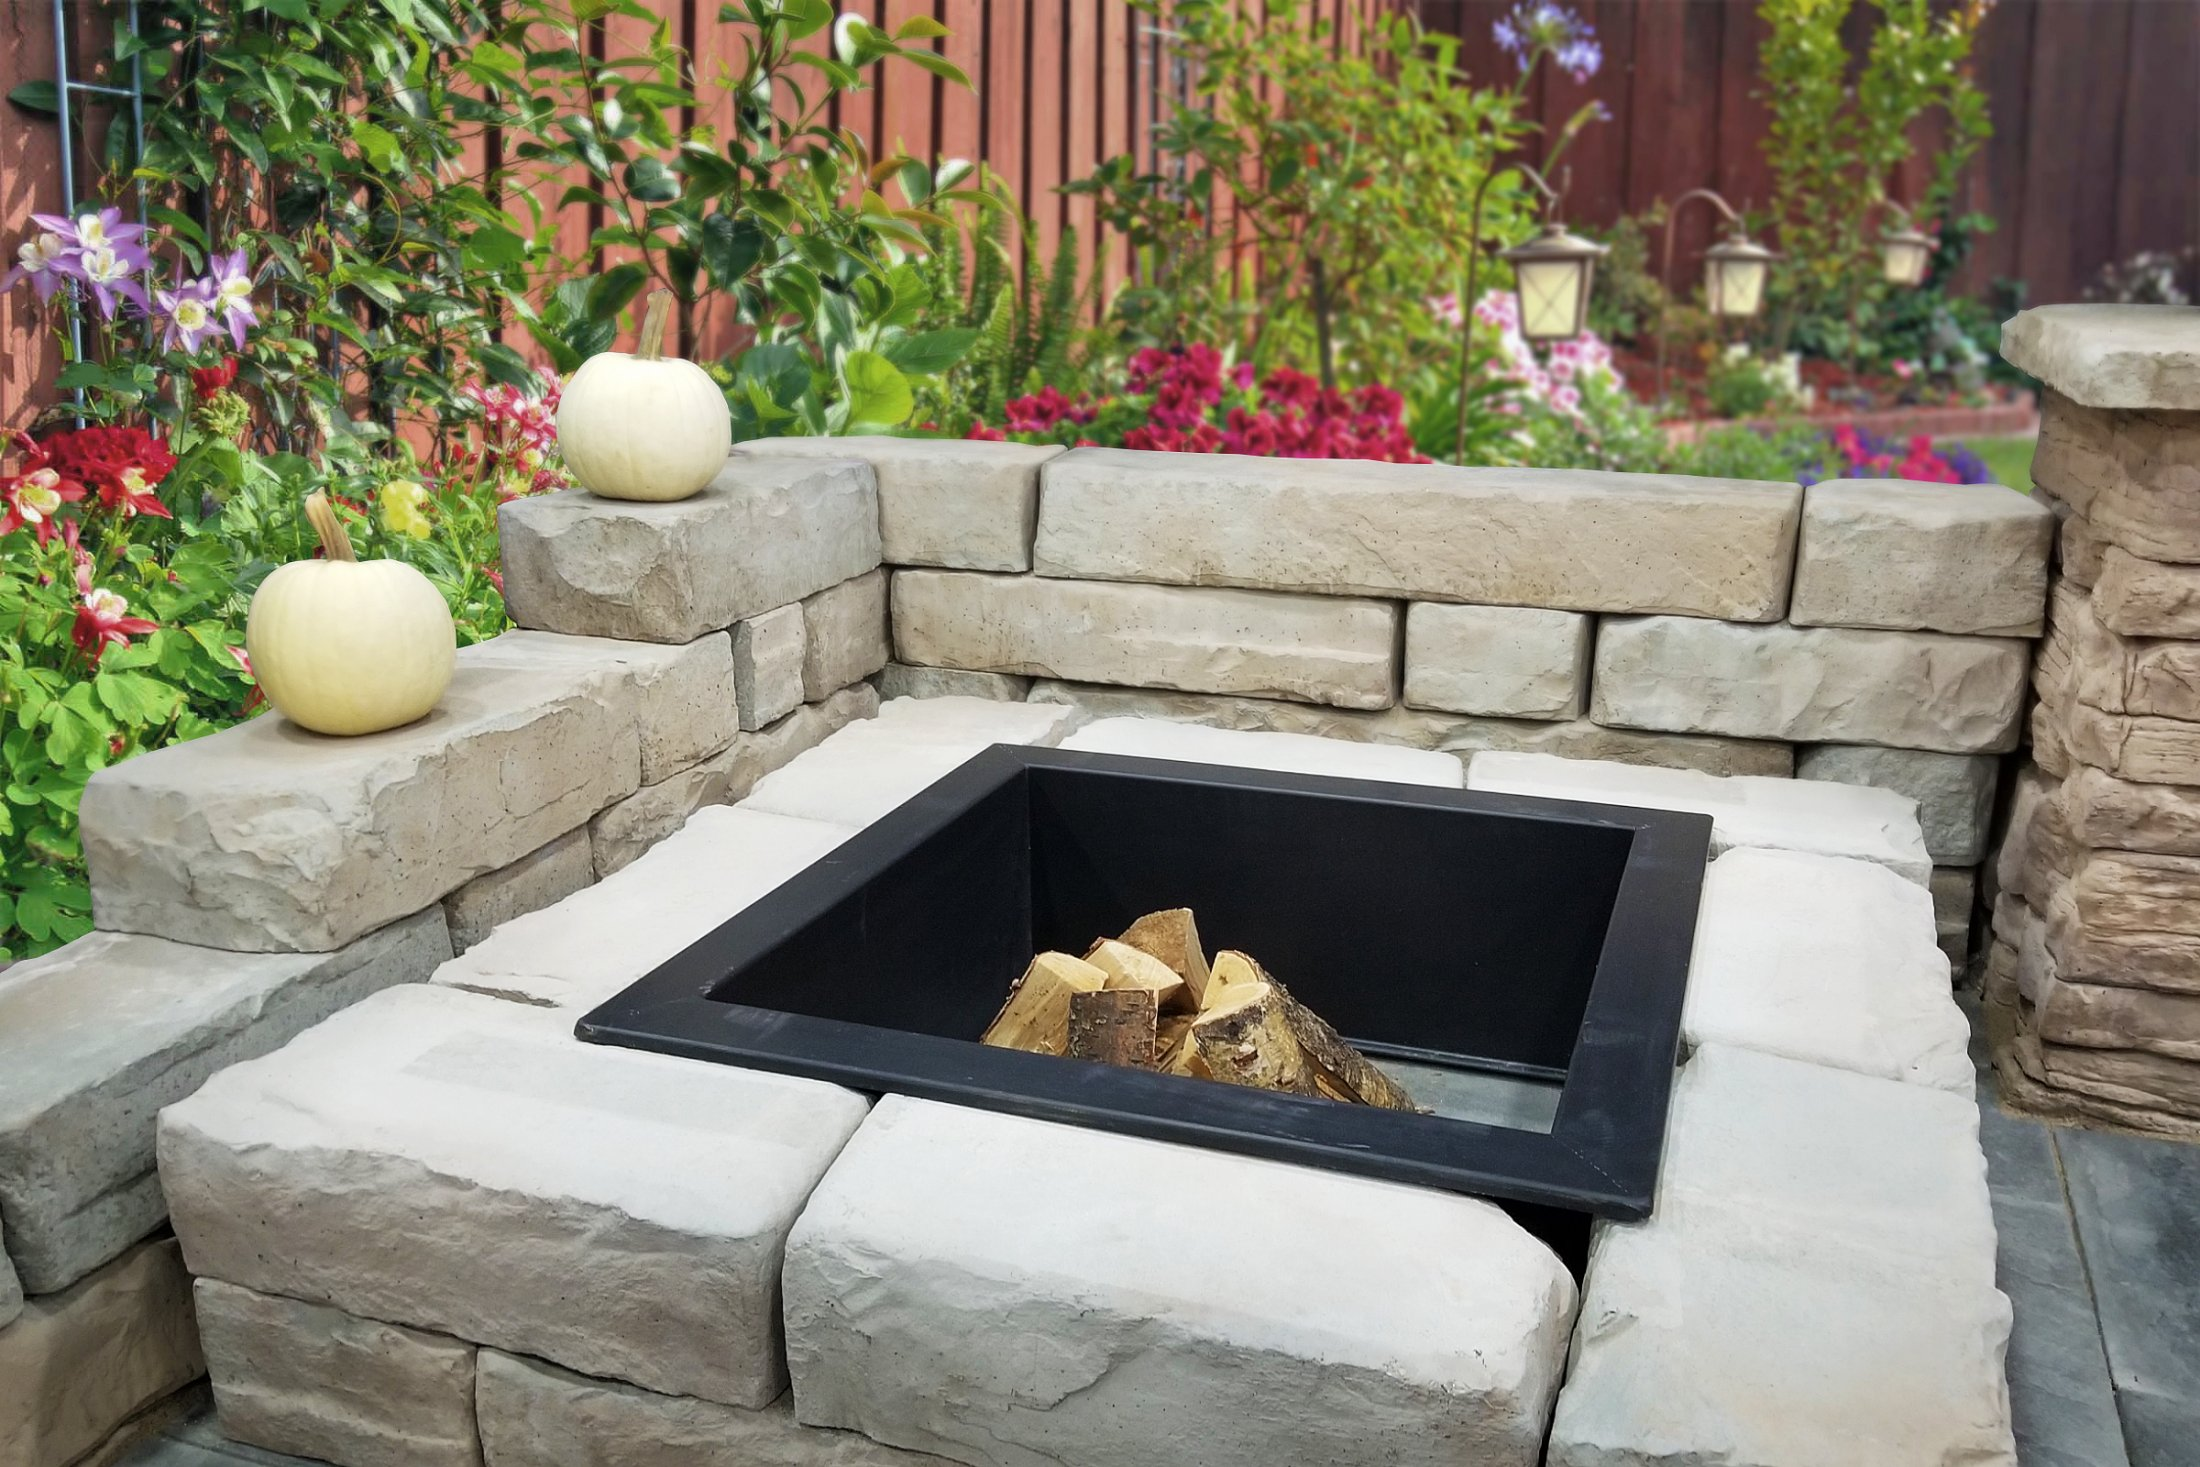 Seat Wall made with Kodah Wall Block by Rosetta Hardscapes